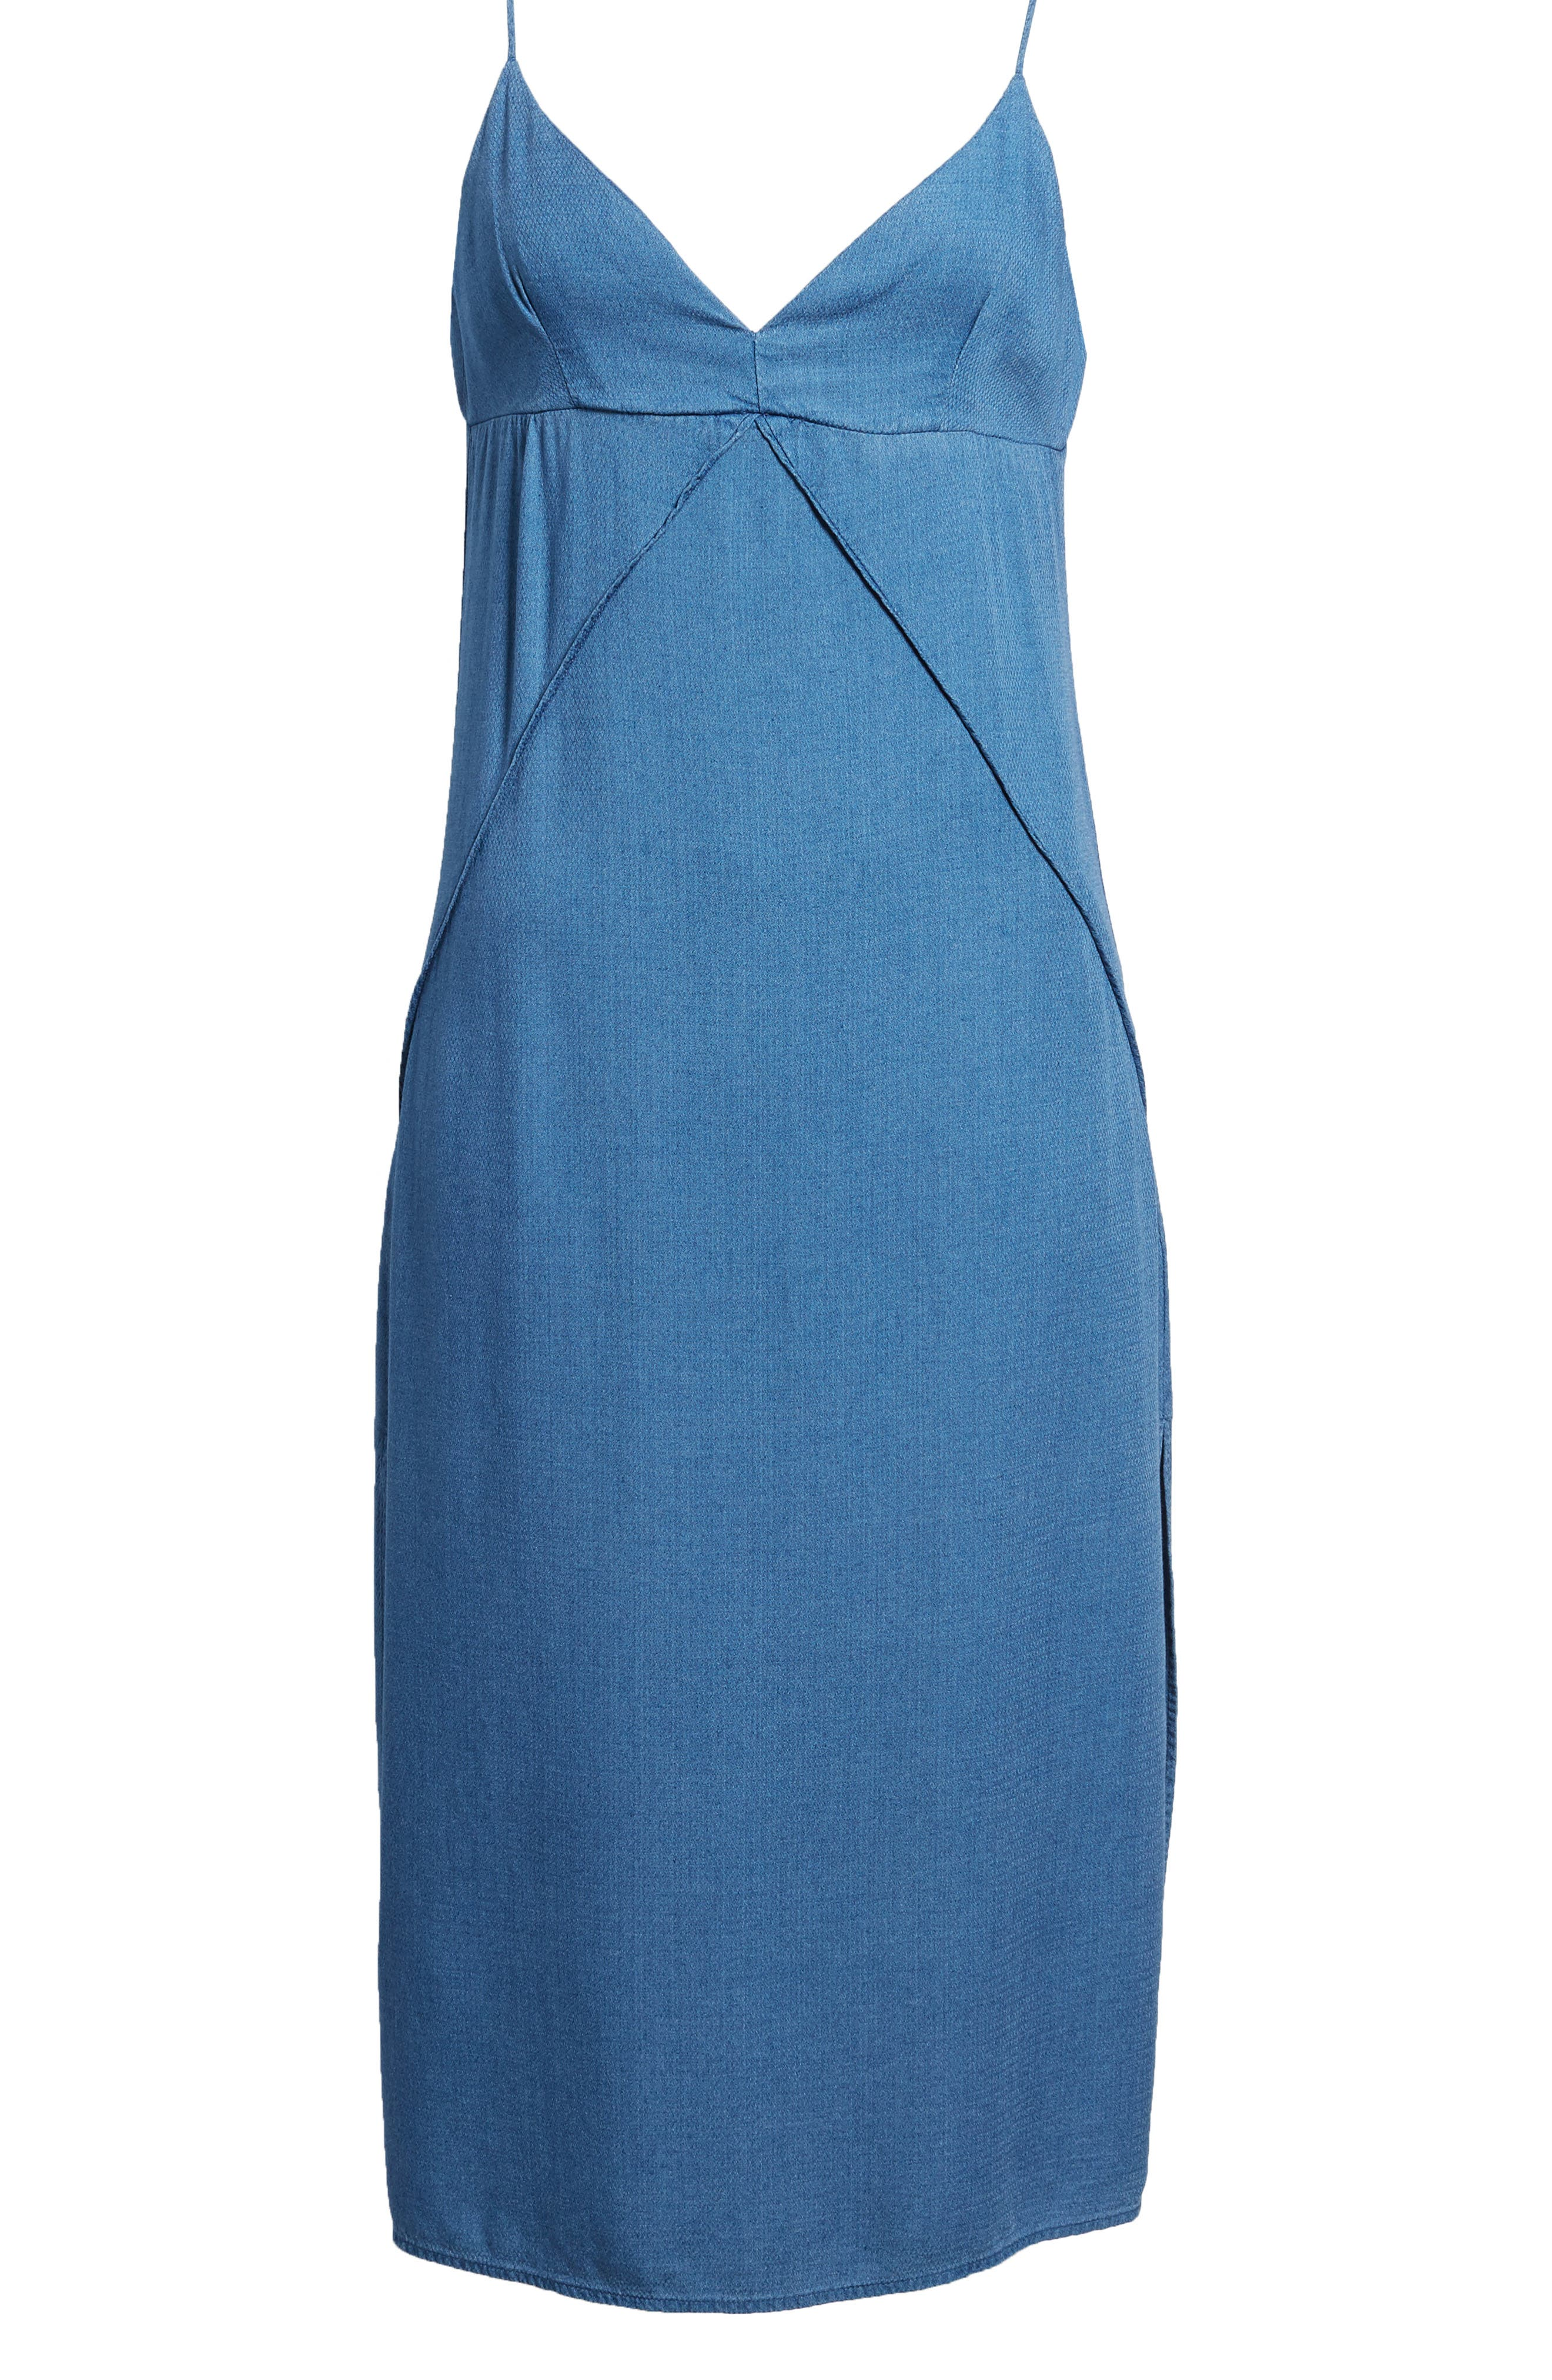 Chambray Camisole Dress,                             Alternate thumbnail 6, color,